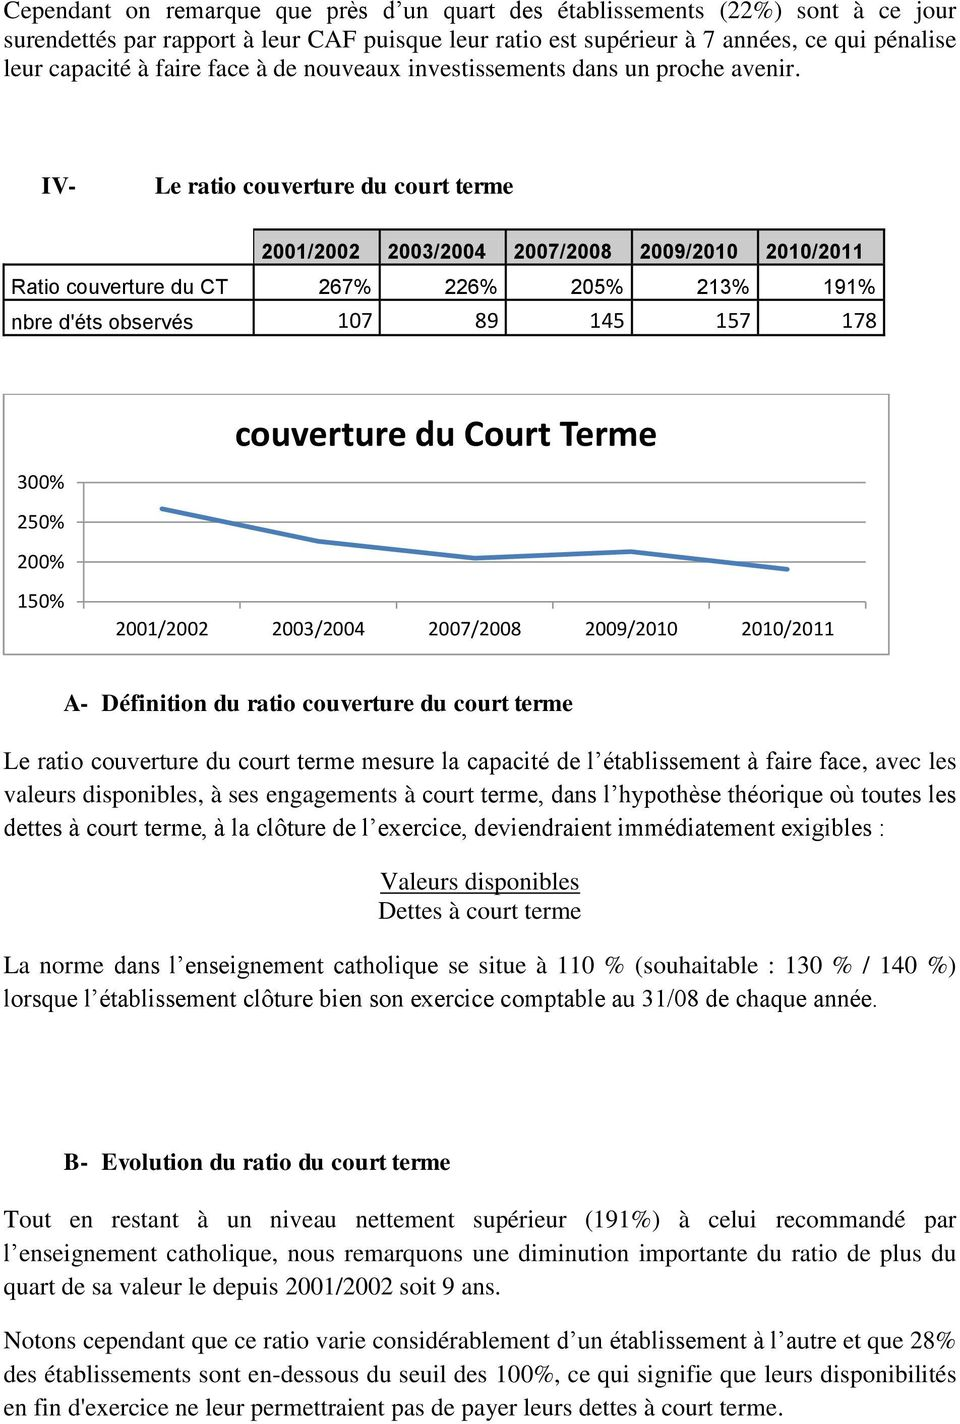 IV- Le ratio couverture du court terme Ratio couverture du CT 267% 226% 205% 213% 191% nbre d'éts observés 107 89 145 157 178 300% 250% 200% couverture du Court Terme 150% A- Définition du ratio